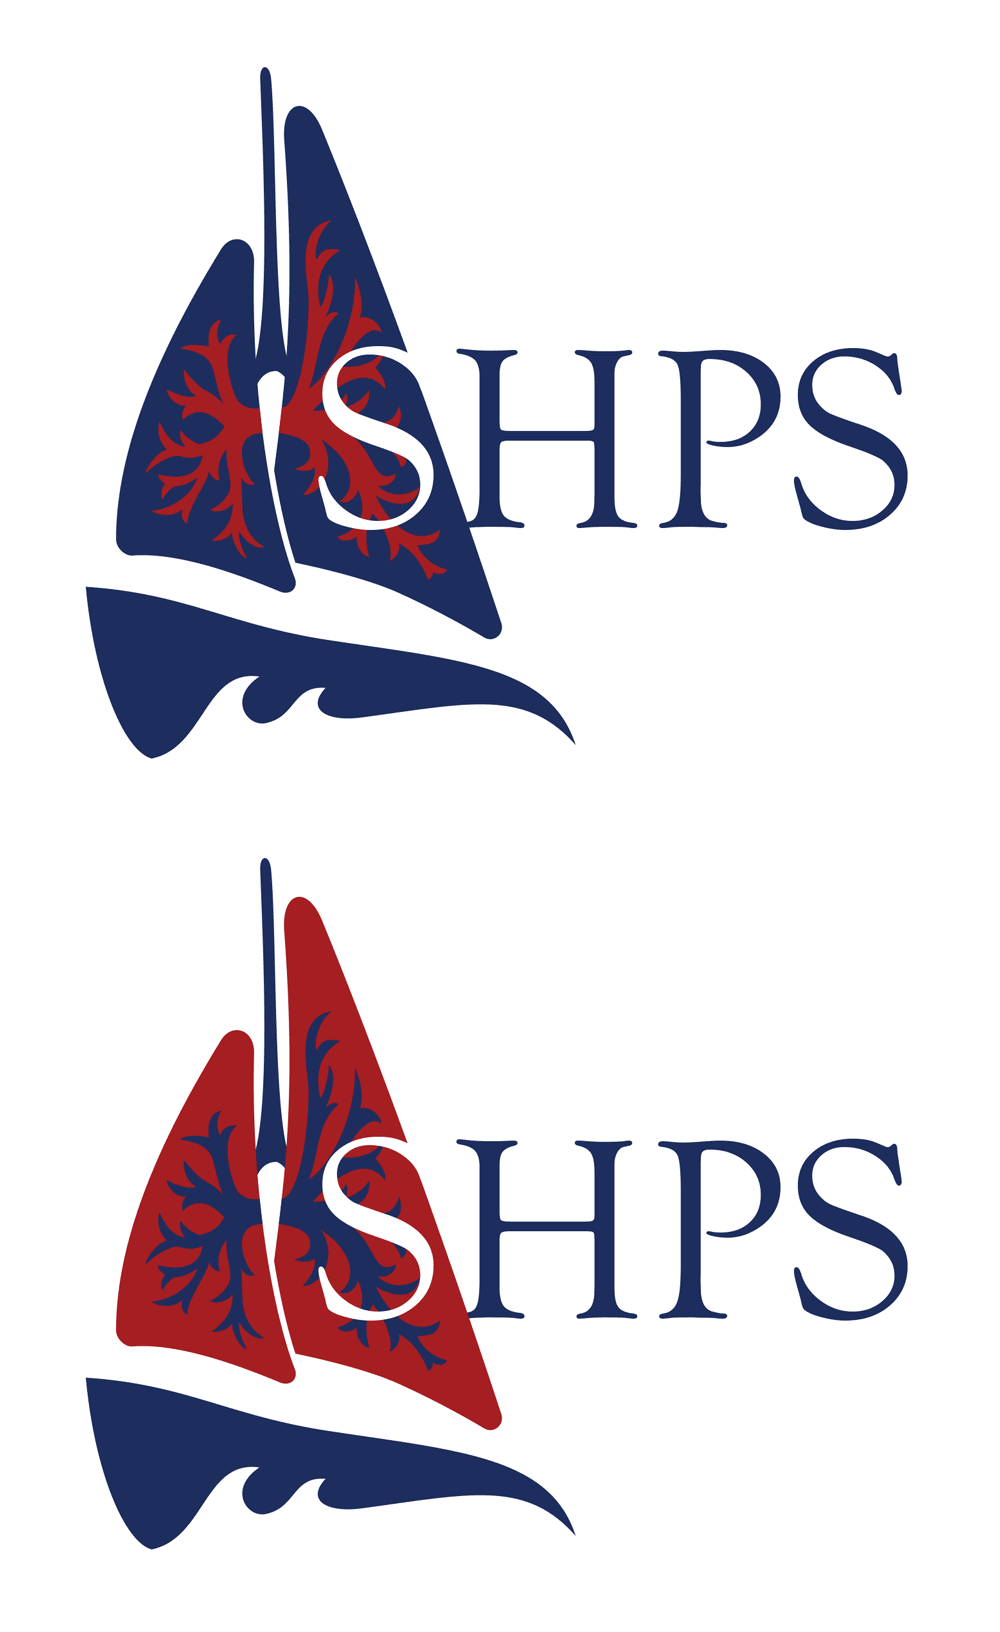 SHPS logo, two colors